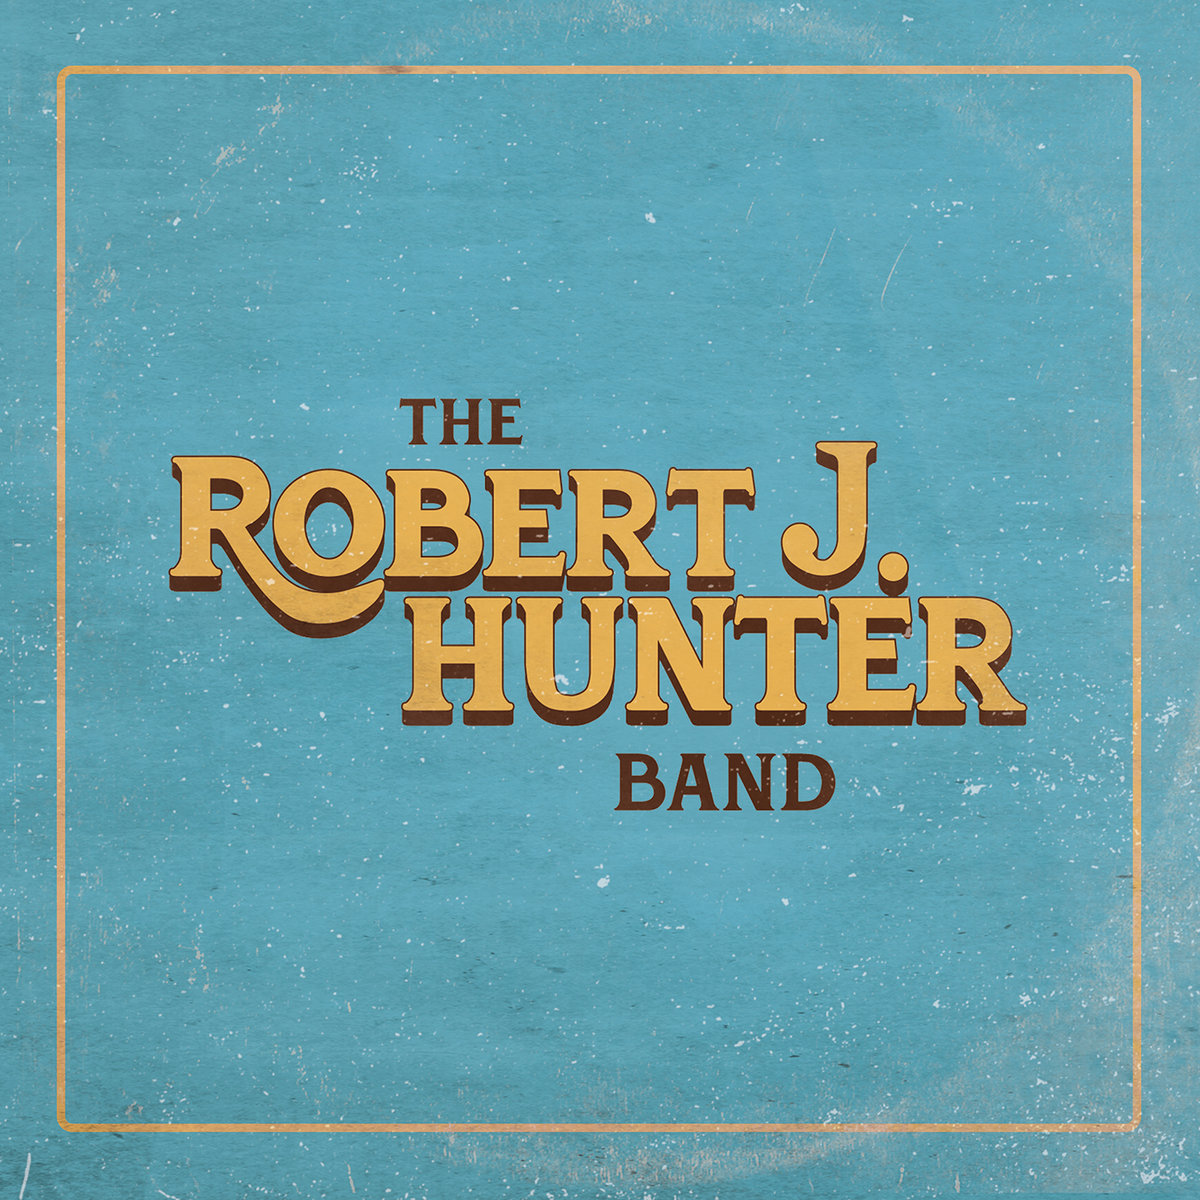 Image result for robert j hunter band